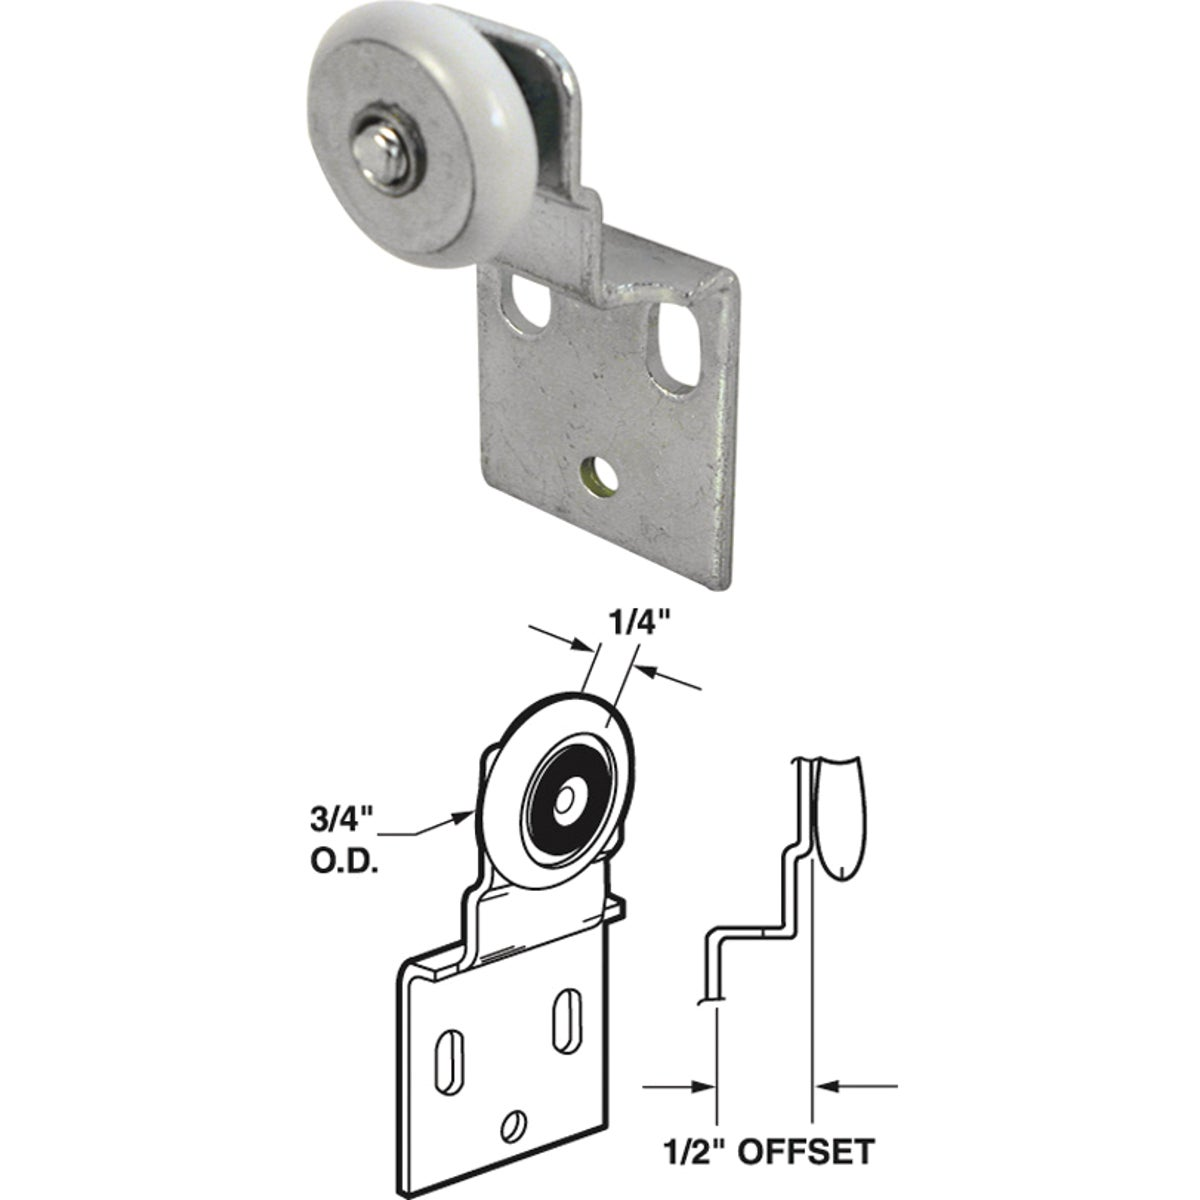 WARDROBE ADJUST BRACKET - 16202-B by Prime Line Products